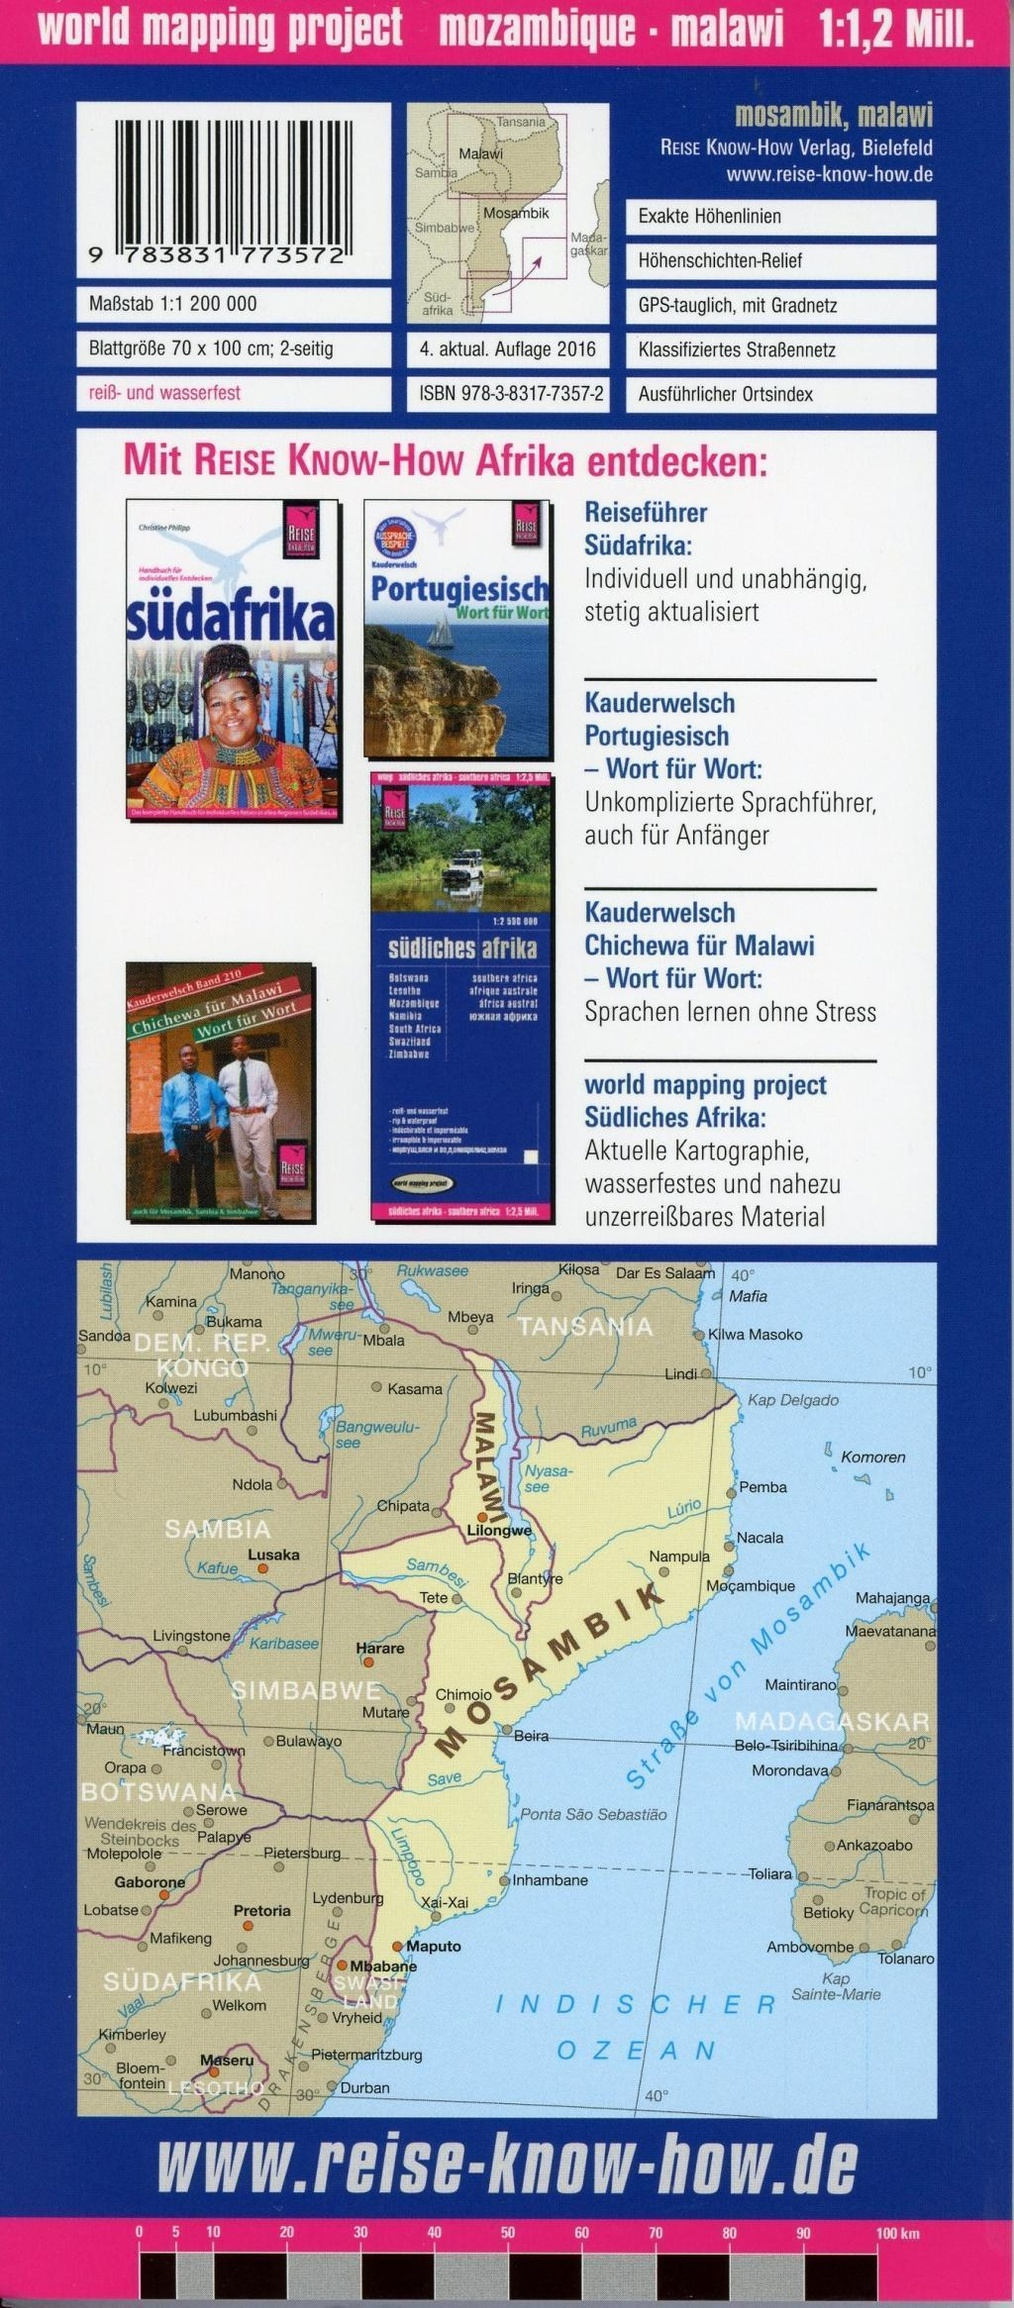 Reise Know How Landkarte Mosambik Malawi 1 1 200 000 Mozambique